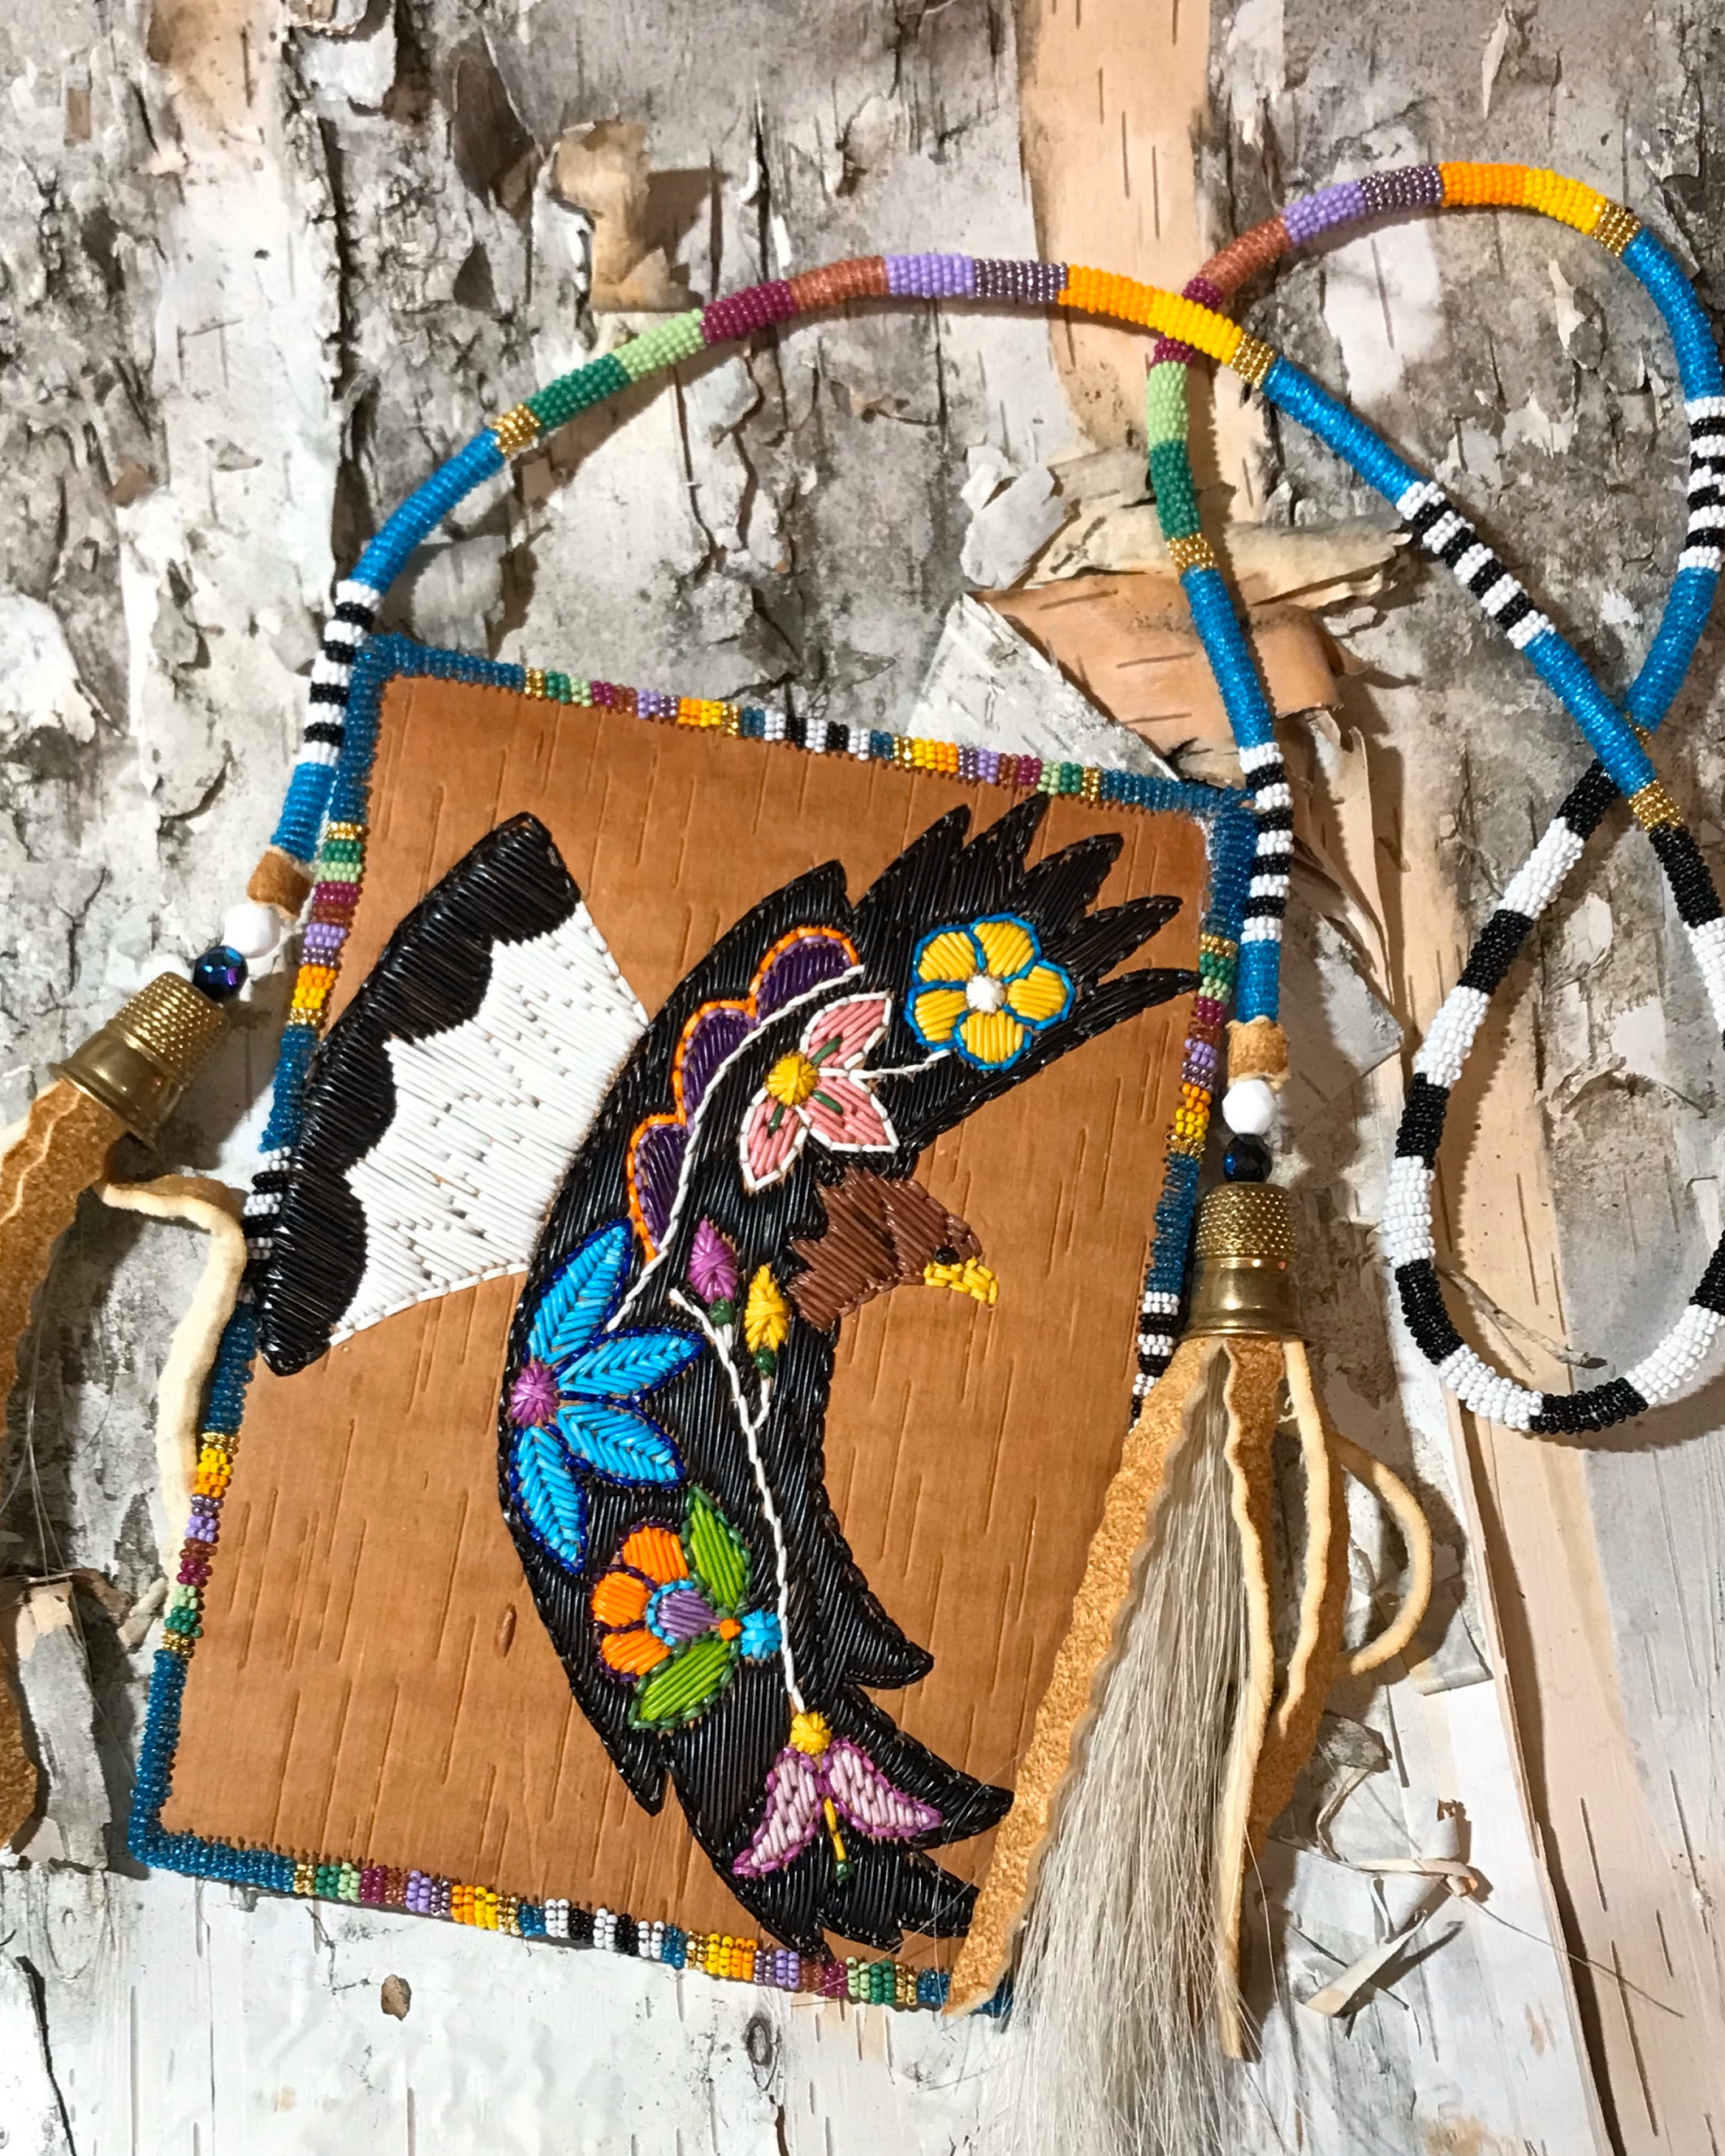 A piece of traditional woodland quillwork depicts colorful flowers against a slab of birch bark